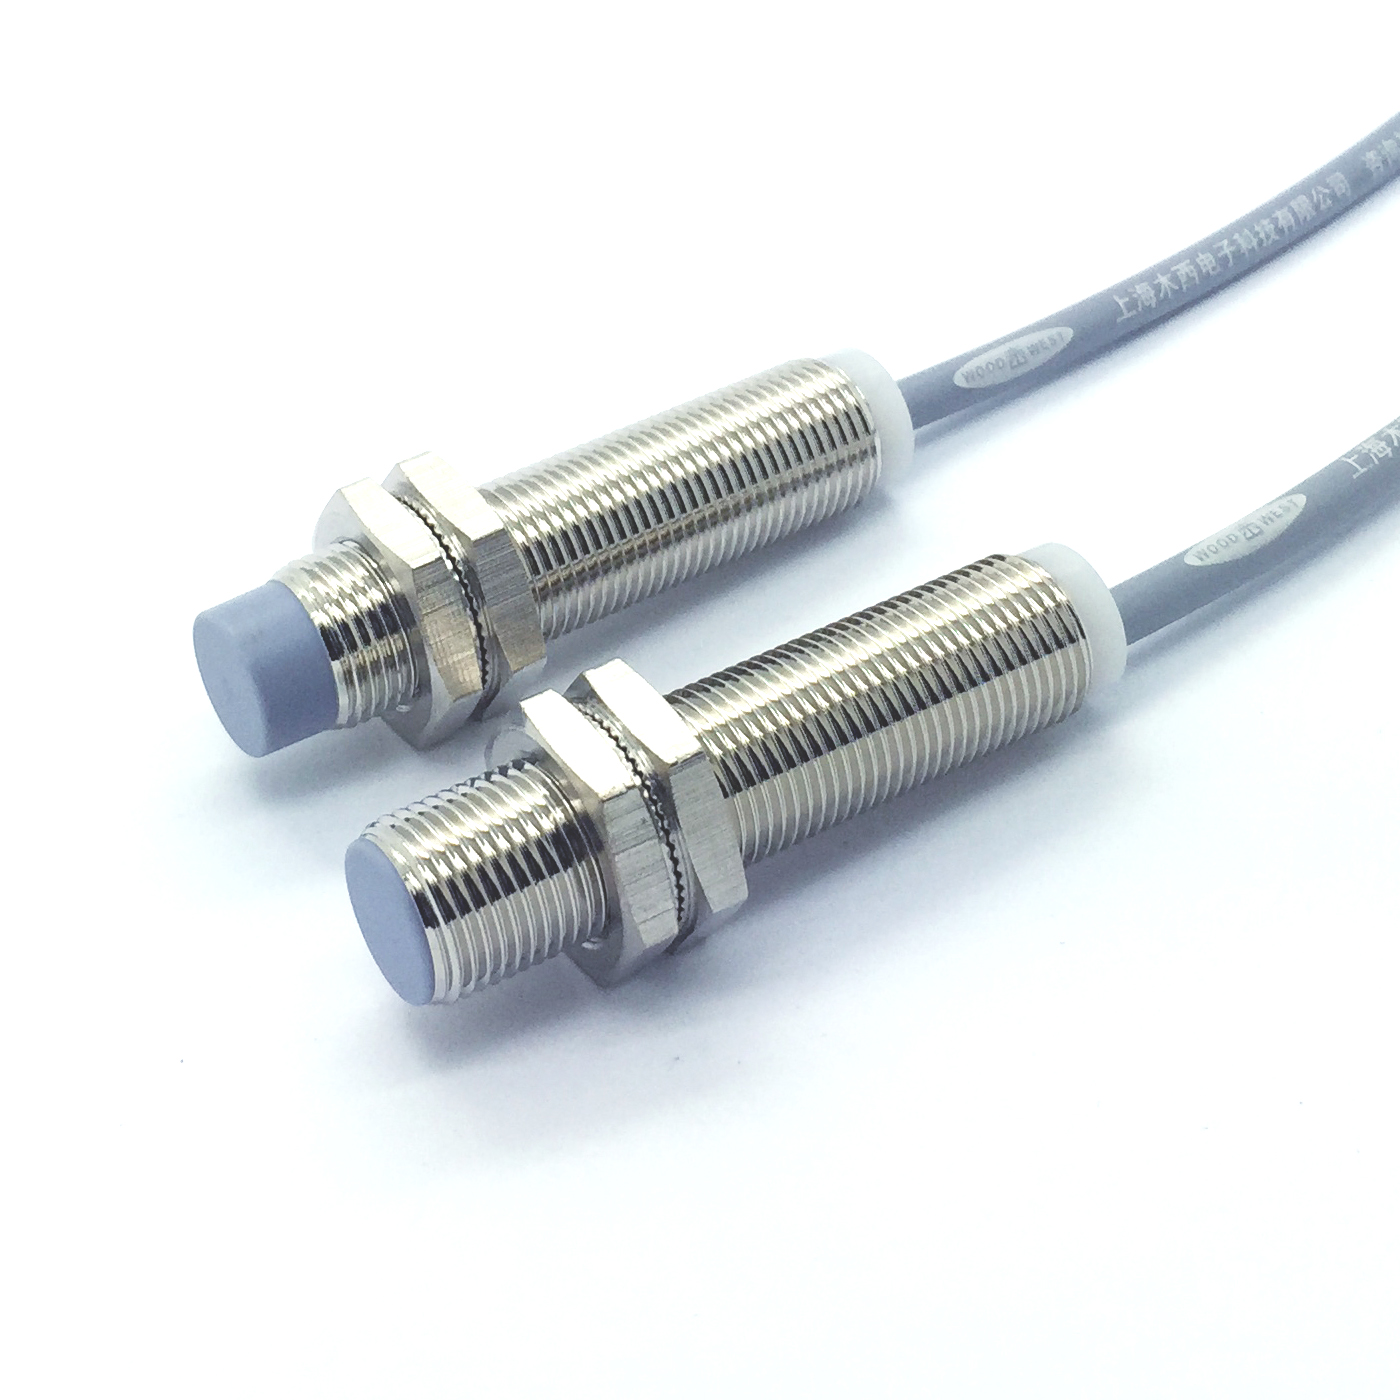 M12 inductance sensor, close to switch